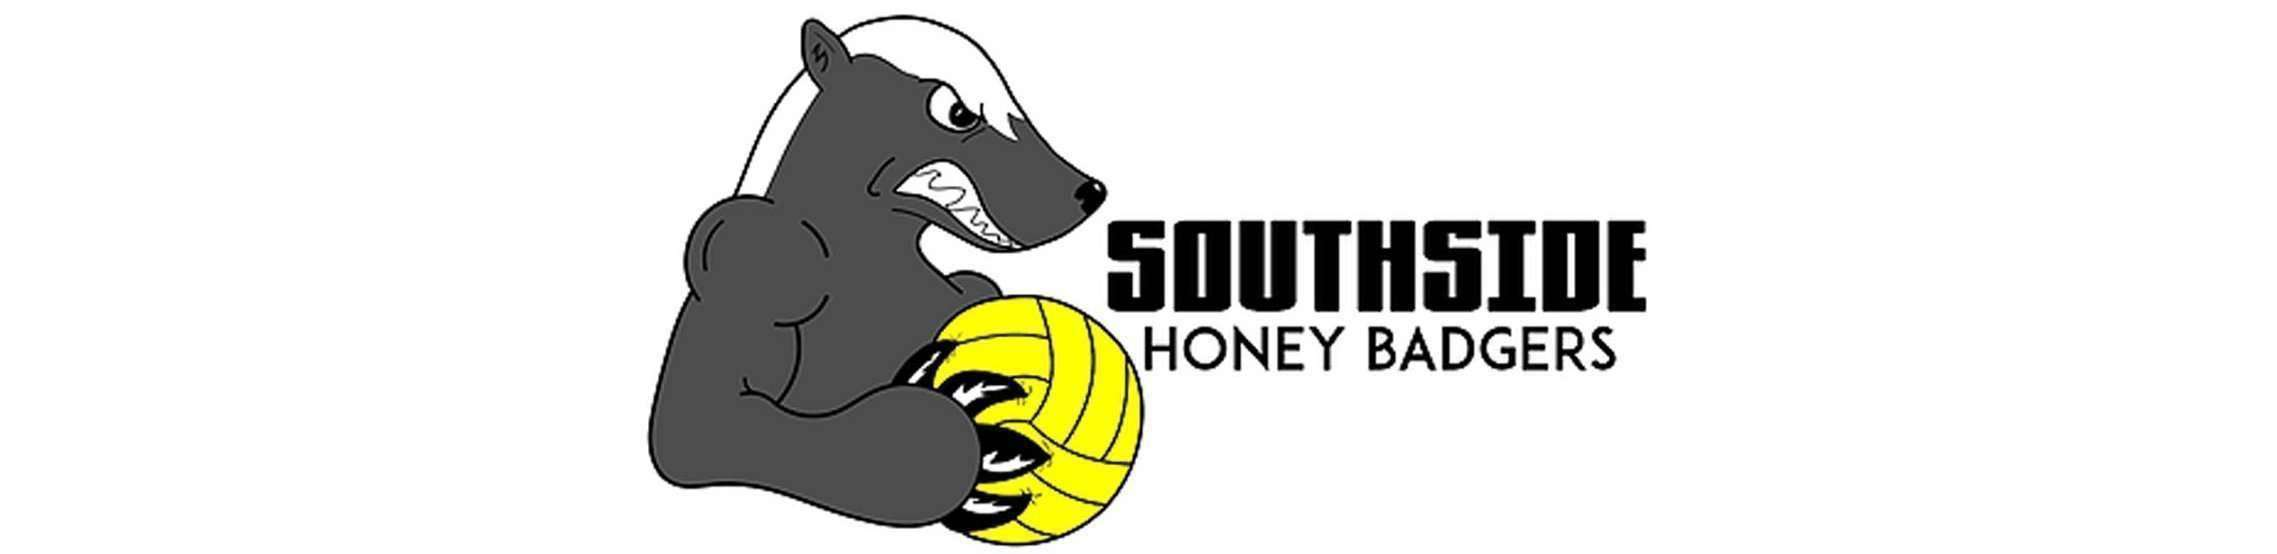 Southside Honey Badgers